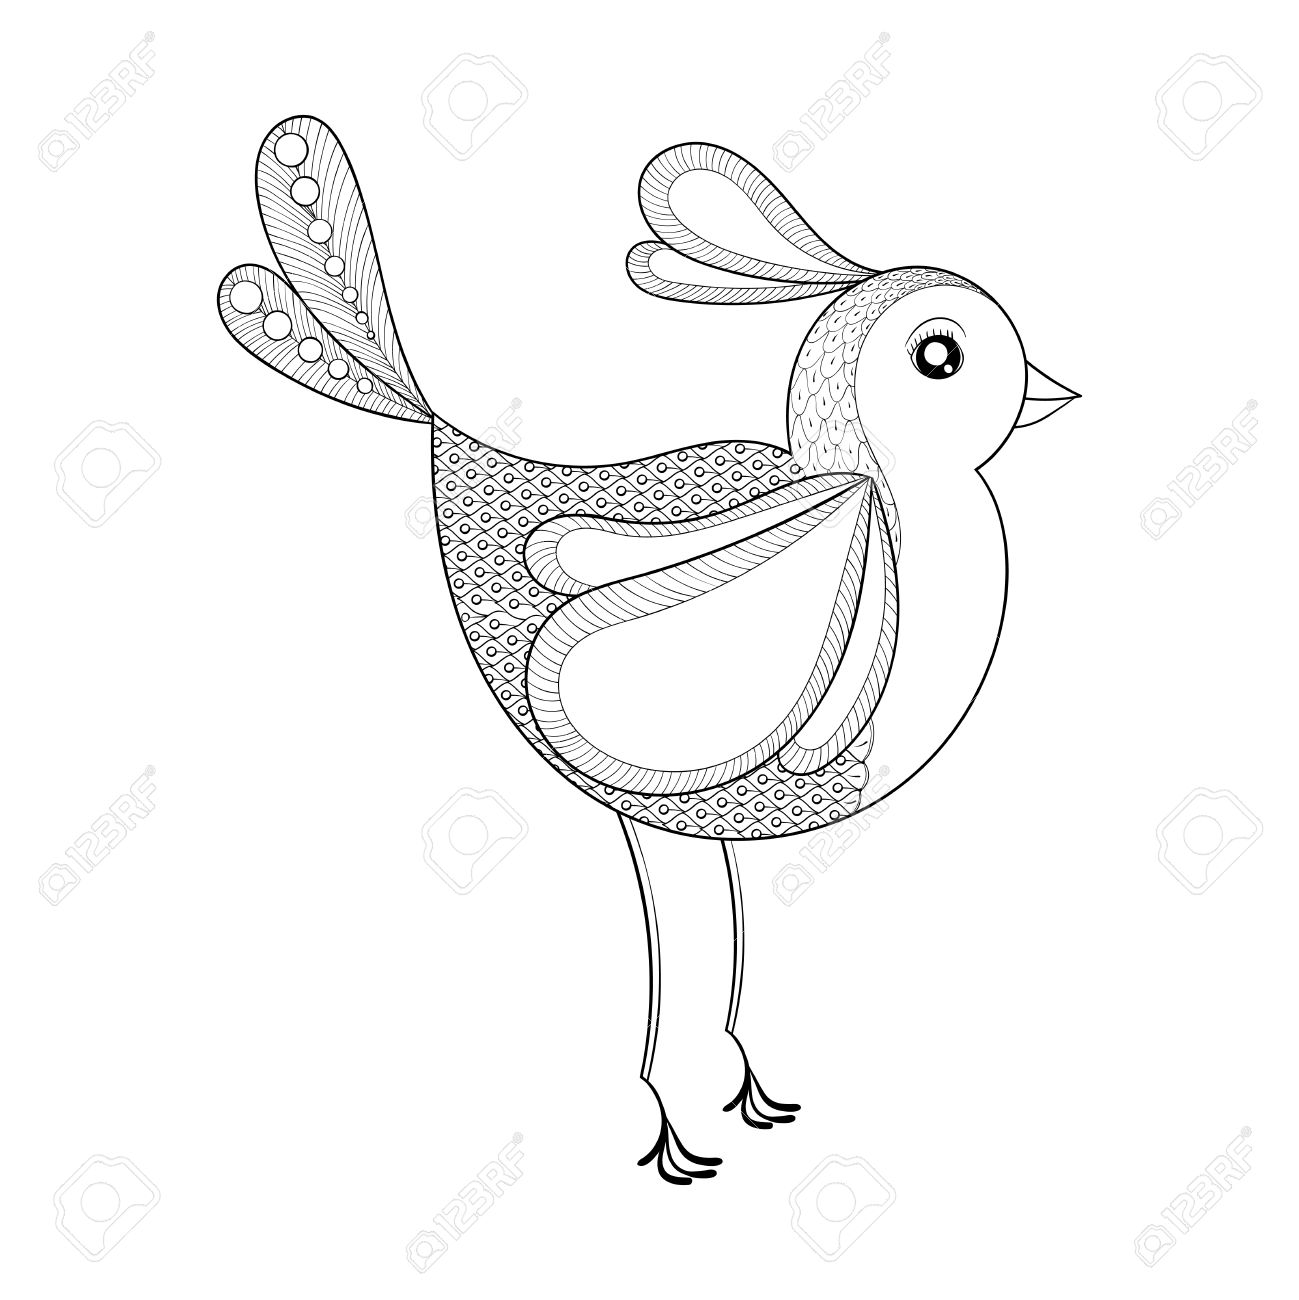 Vector Bird Coloring Page With Zentangled Hand Drawn